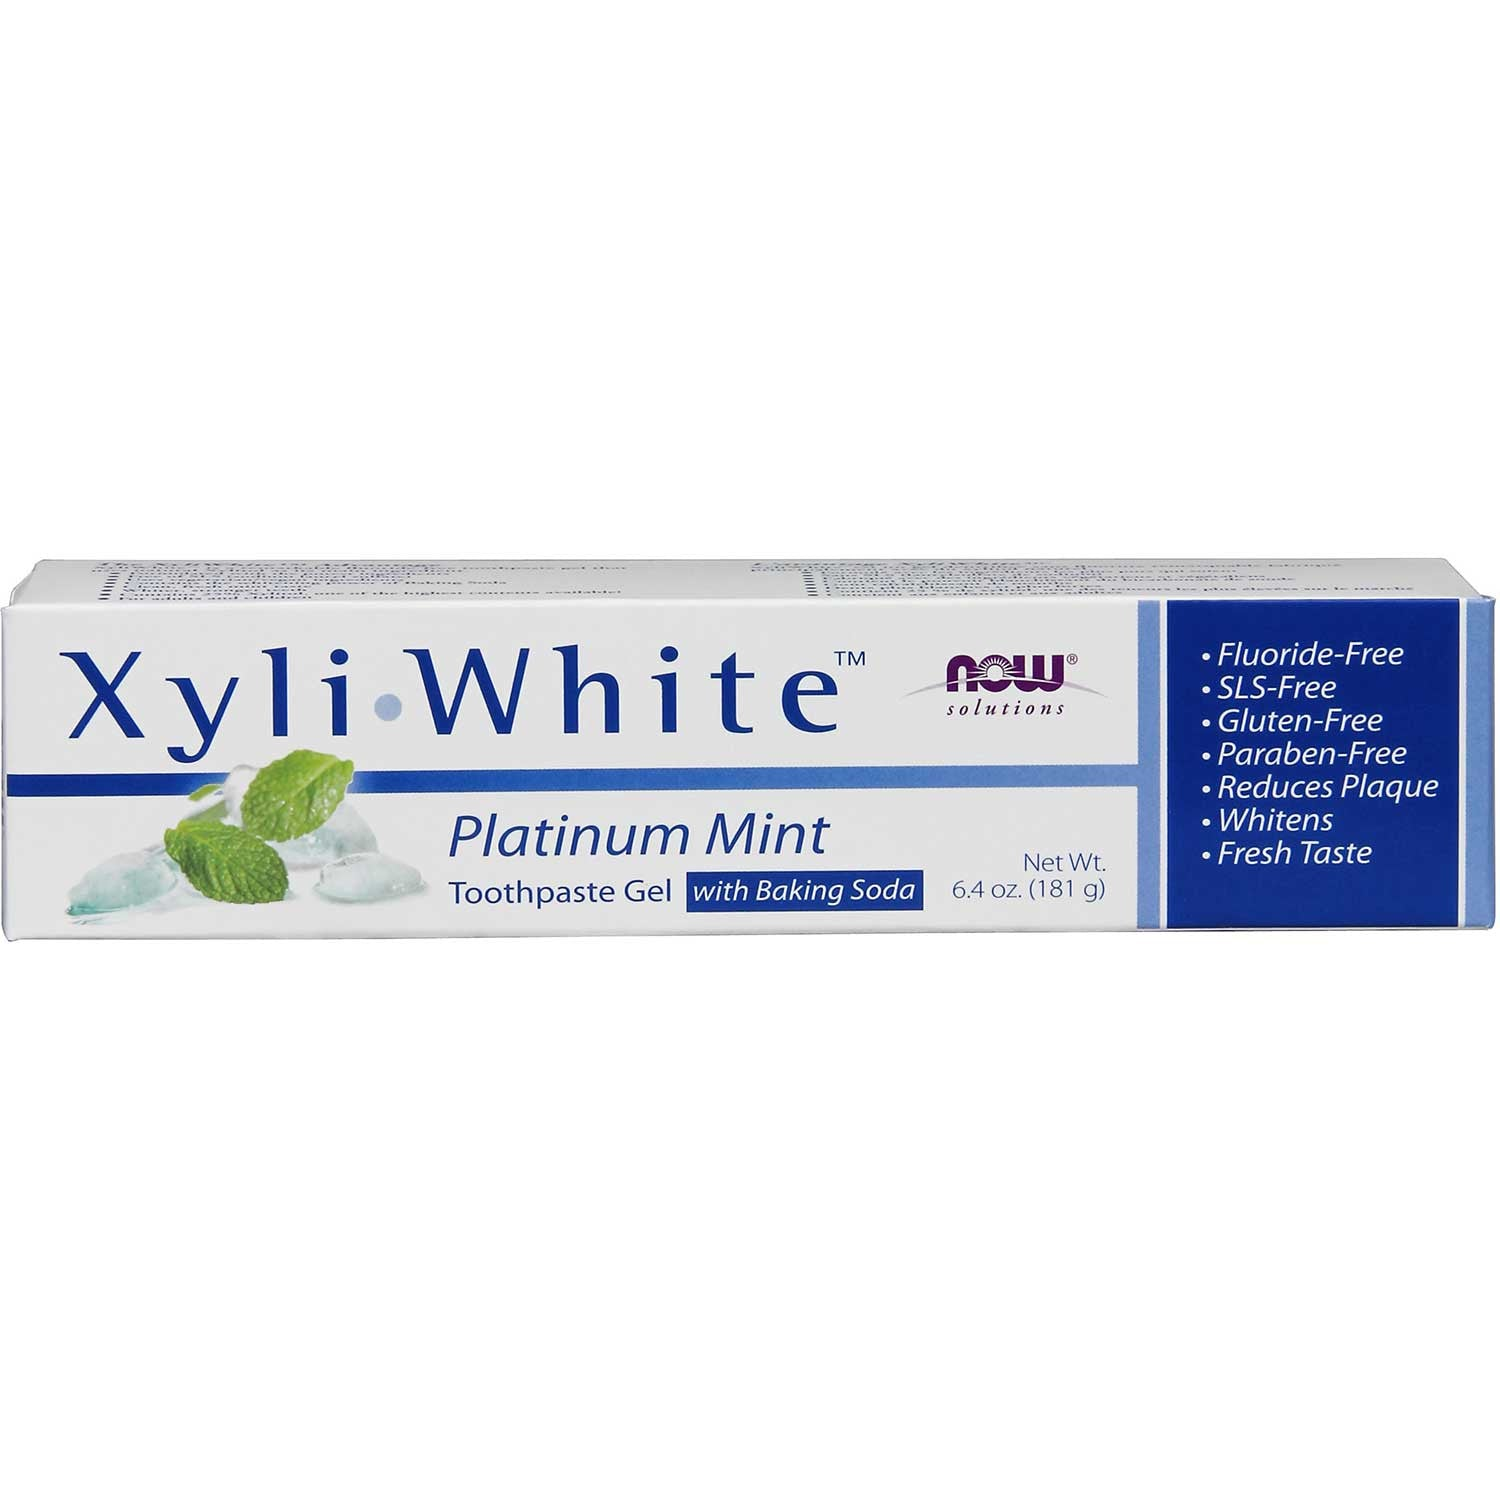 NOW Solutions XyliWhite Toothpaste Gel - Platinum Mint w/Baking Soda (Fluoride-Free), 181 g.-NaturesWisdom